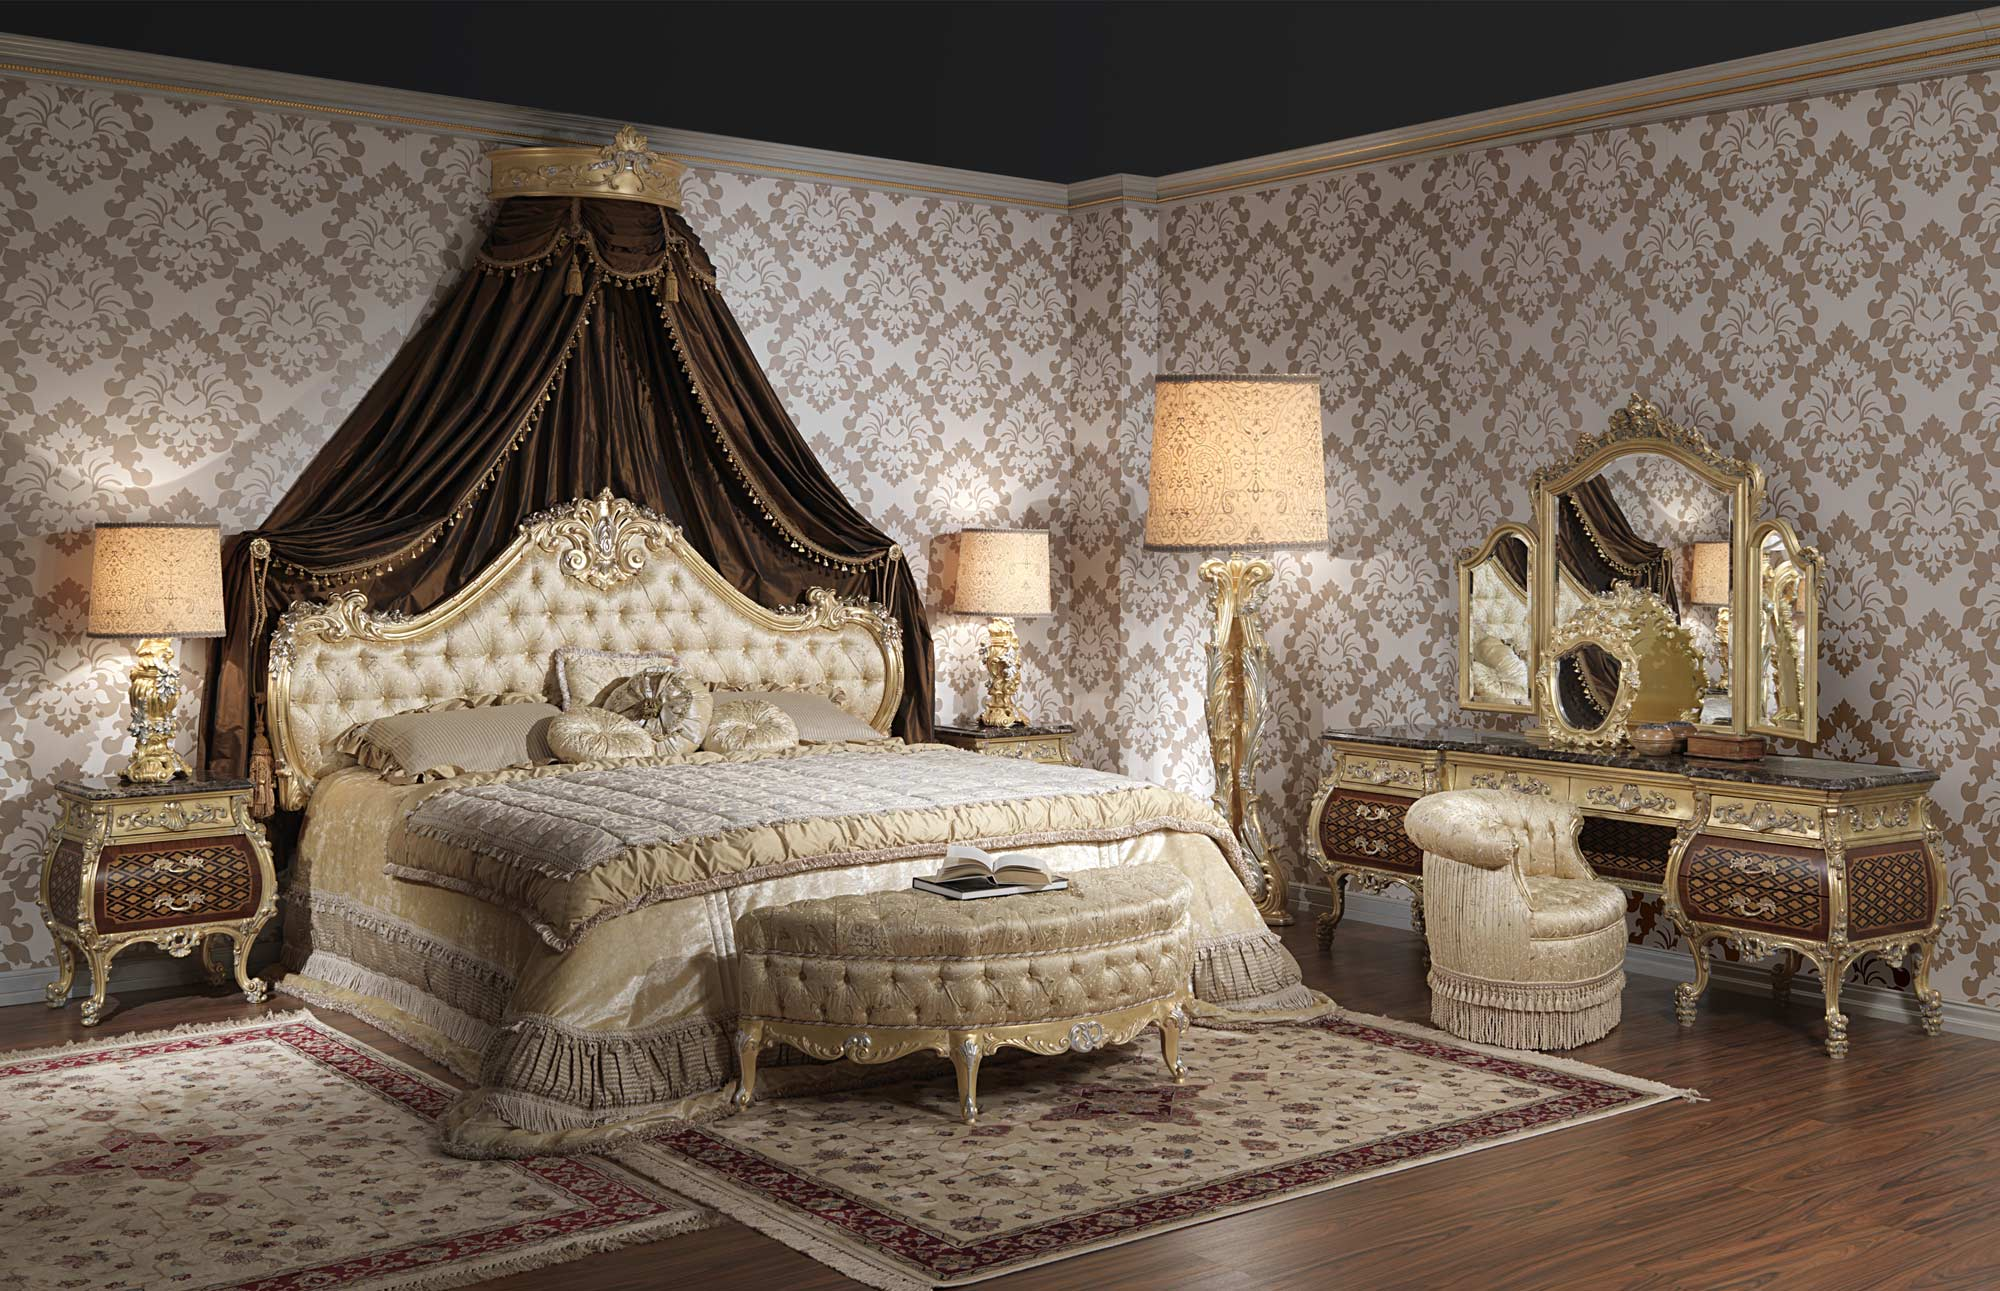 https://www.vimercatimeda.it/sites/default/files/immagine/luxury-bed-emperador-gold-397-931.jpg